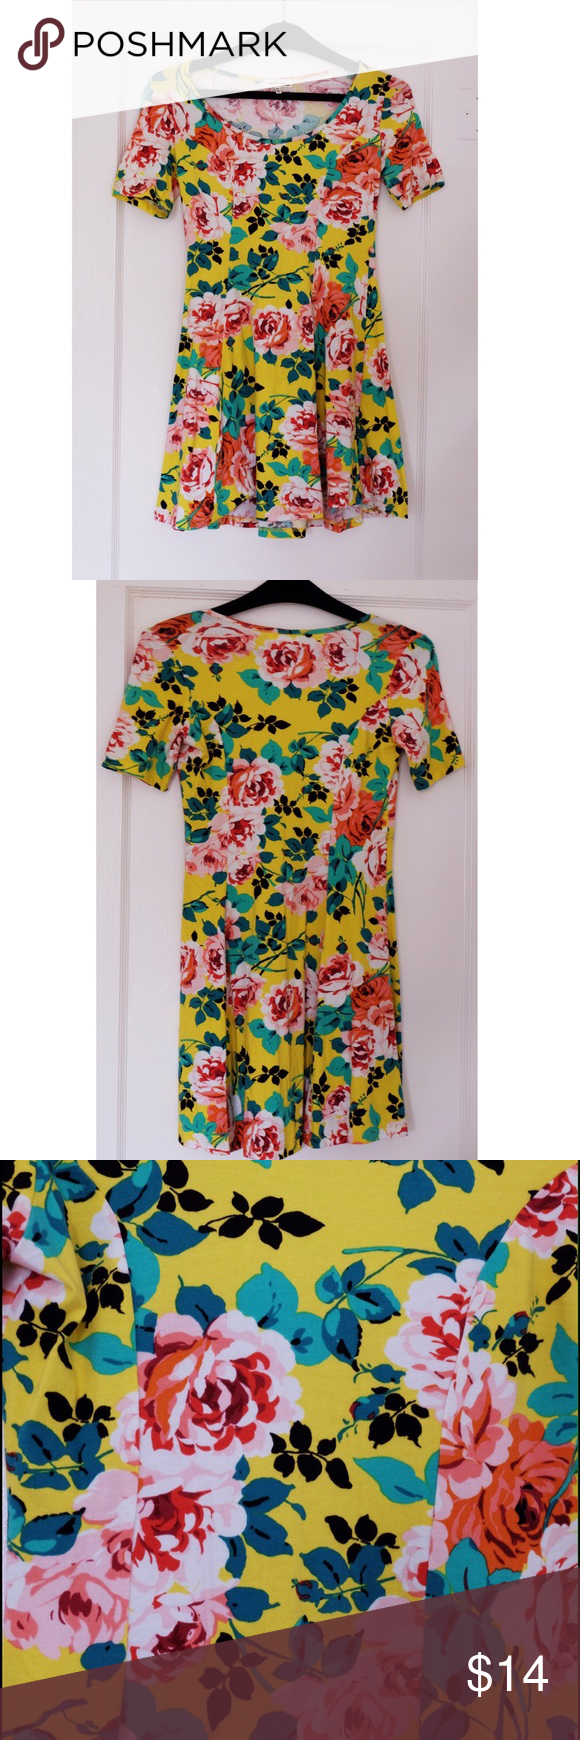 Springy Floral Dress by Monteau Fun spring dress with slight flare at the bottom. This colorful cotton capped sleeve dress is soft and extremely comfortable! The main color is a bright yellow and is decorated with pink florals and green leaves. Only worn once! Monteau Dresses Mini